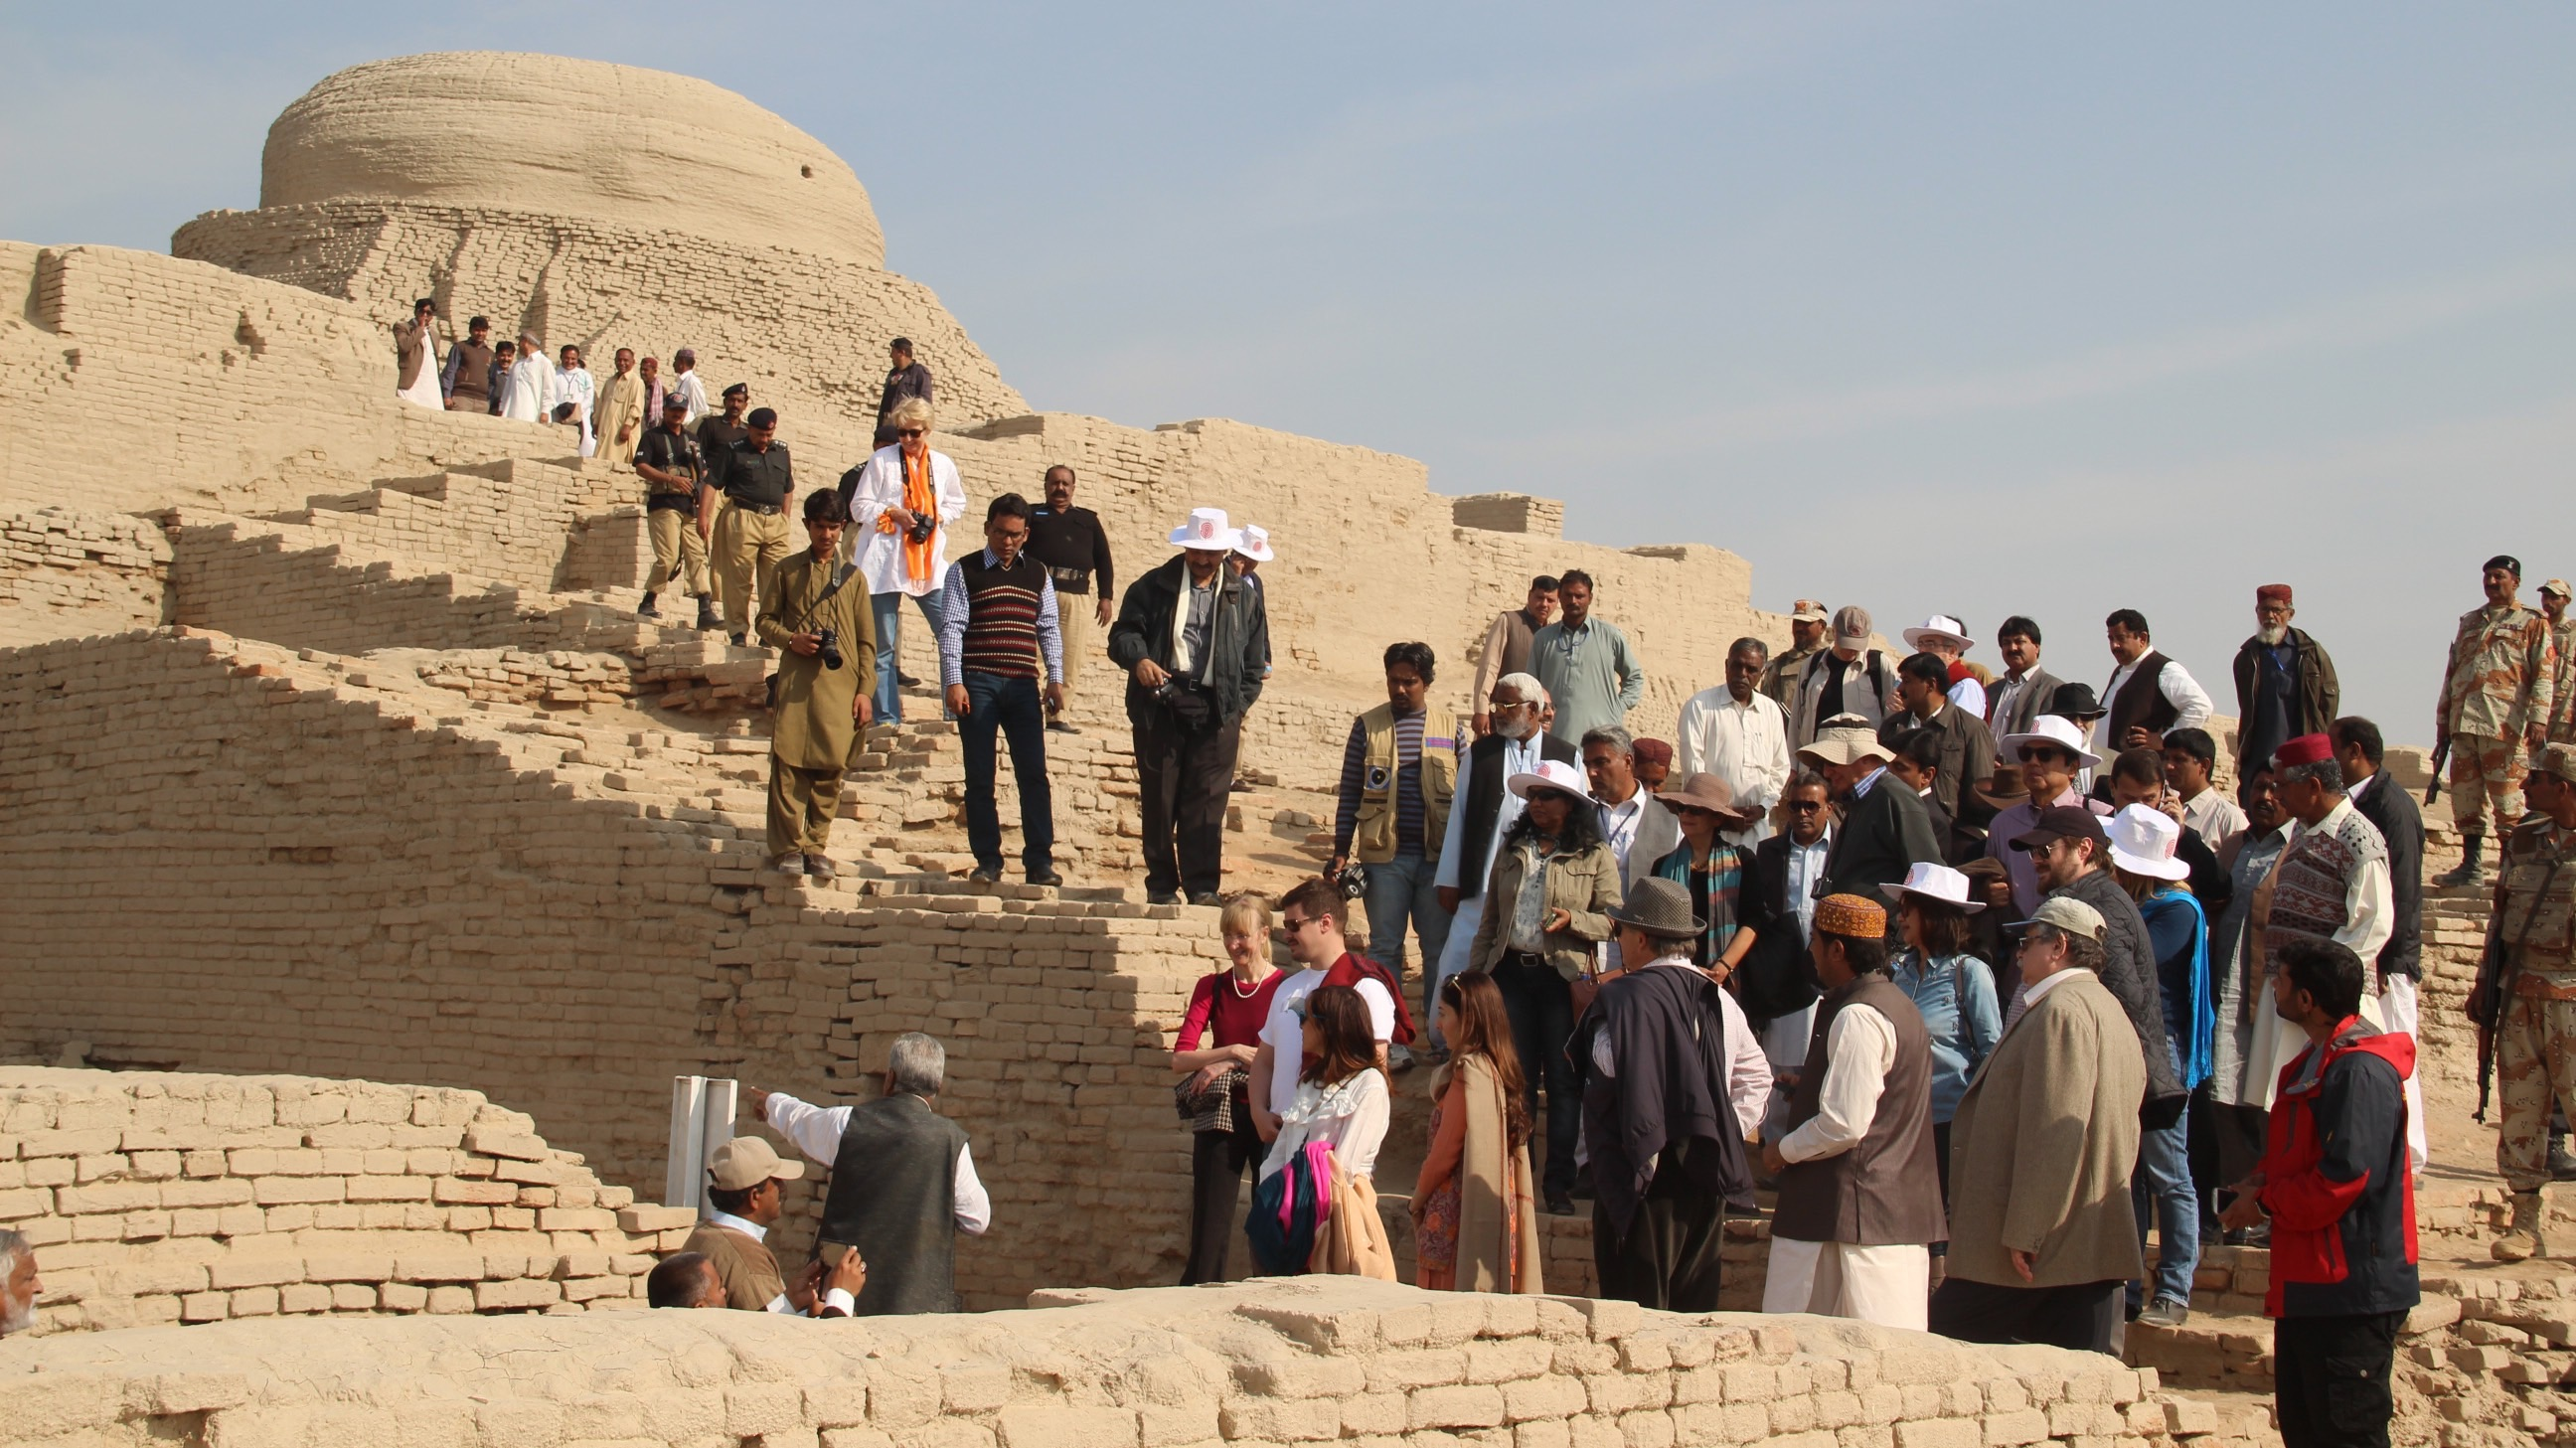 Ambassadors of several foreign countries visit Mohenjo Daro archeological site